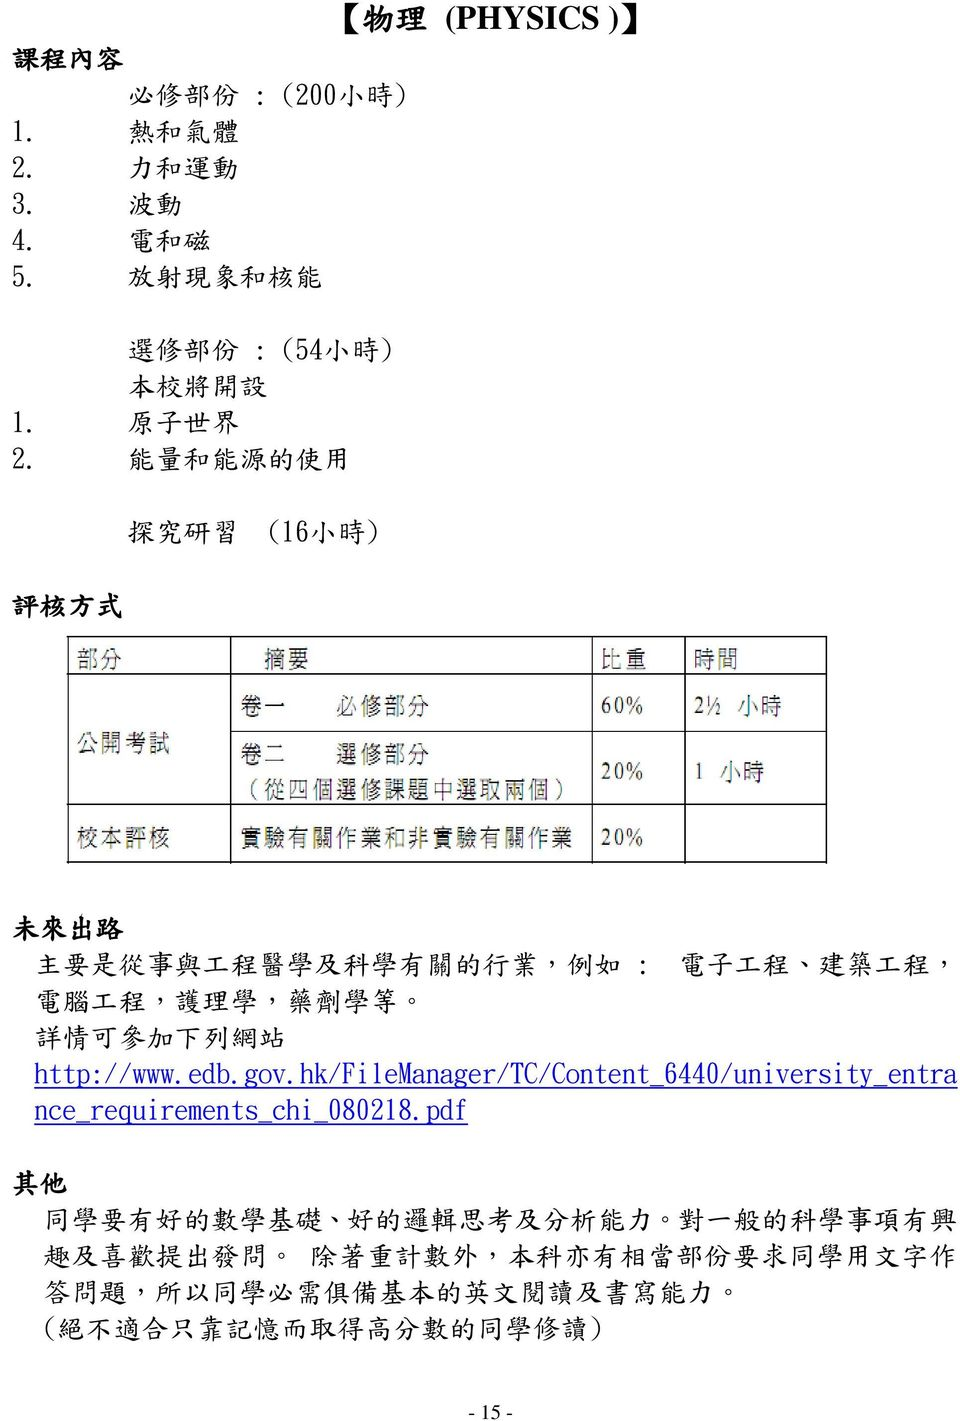 可 參 加 下 列 網 站 http://www.edb.gov.hk/filemanager/tc/content_6440/university_entra nce_requirements_chi_080218.